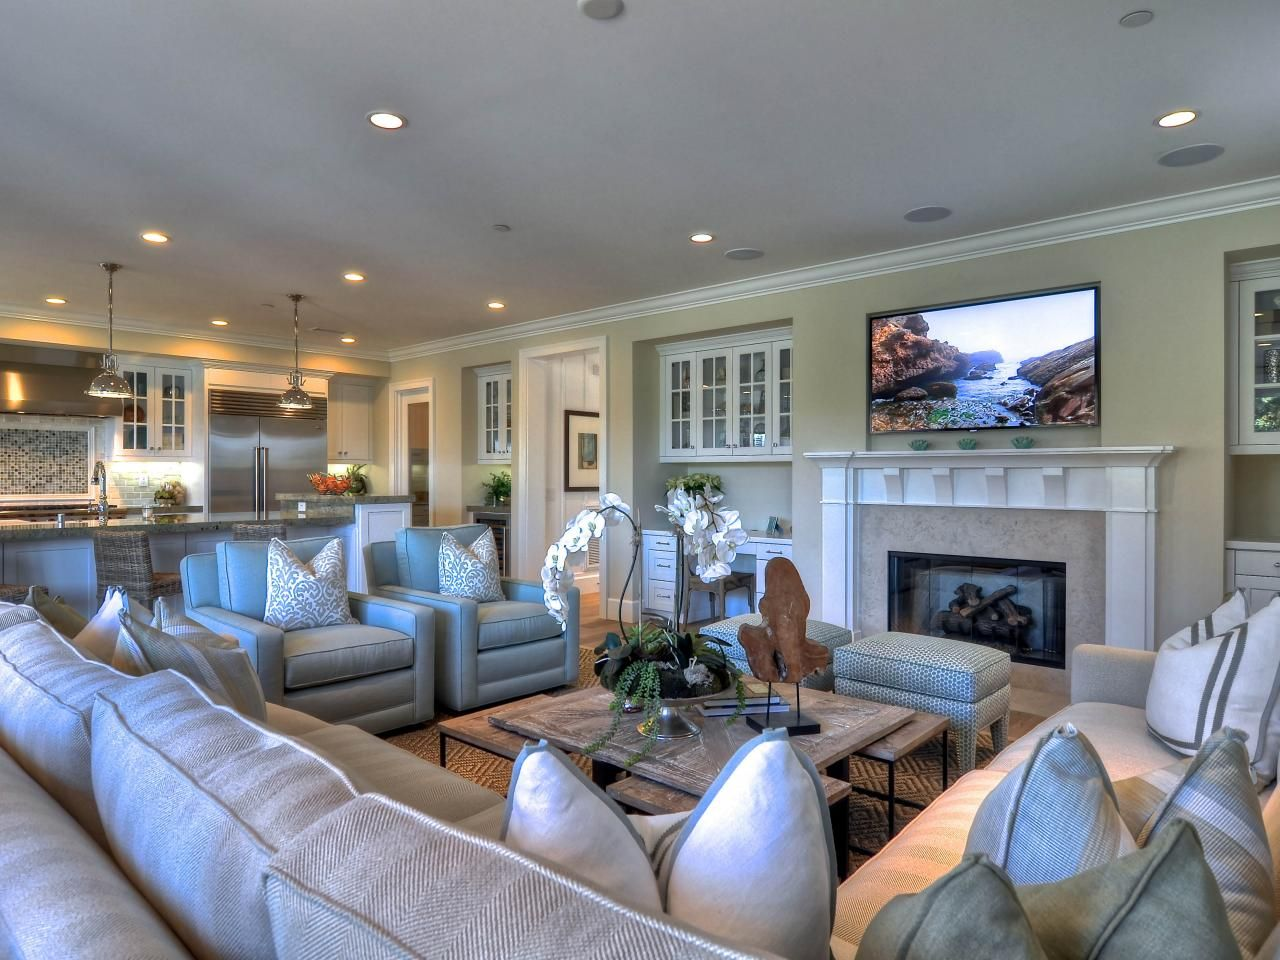 Living Rooms And Coastal Decor Is Found In The Details In This Spacious Family Room